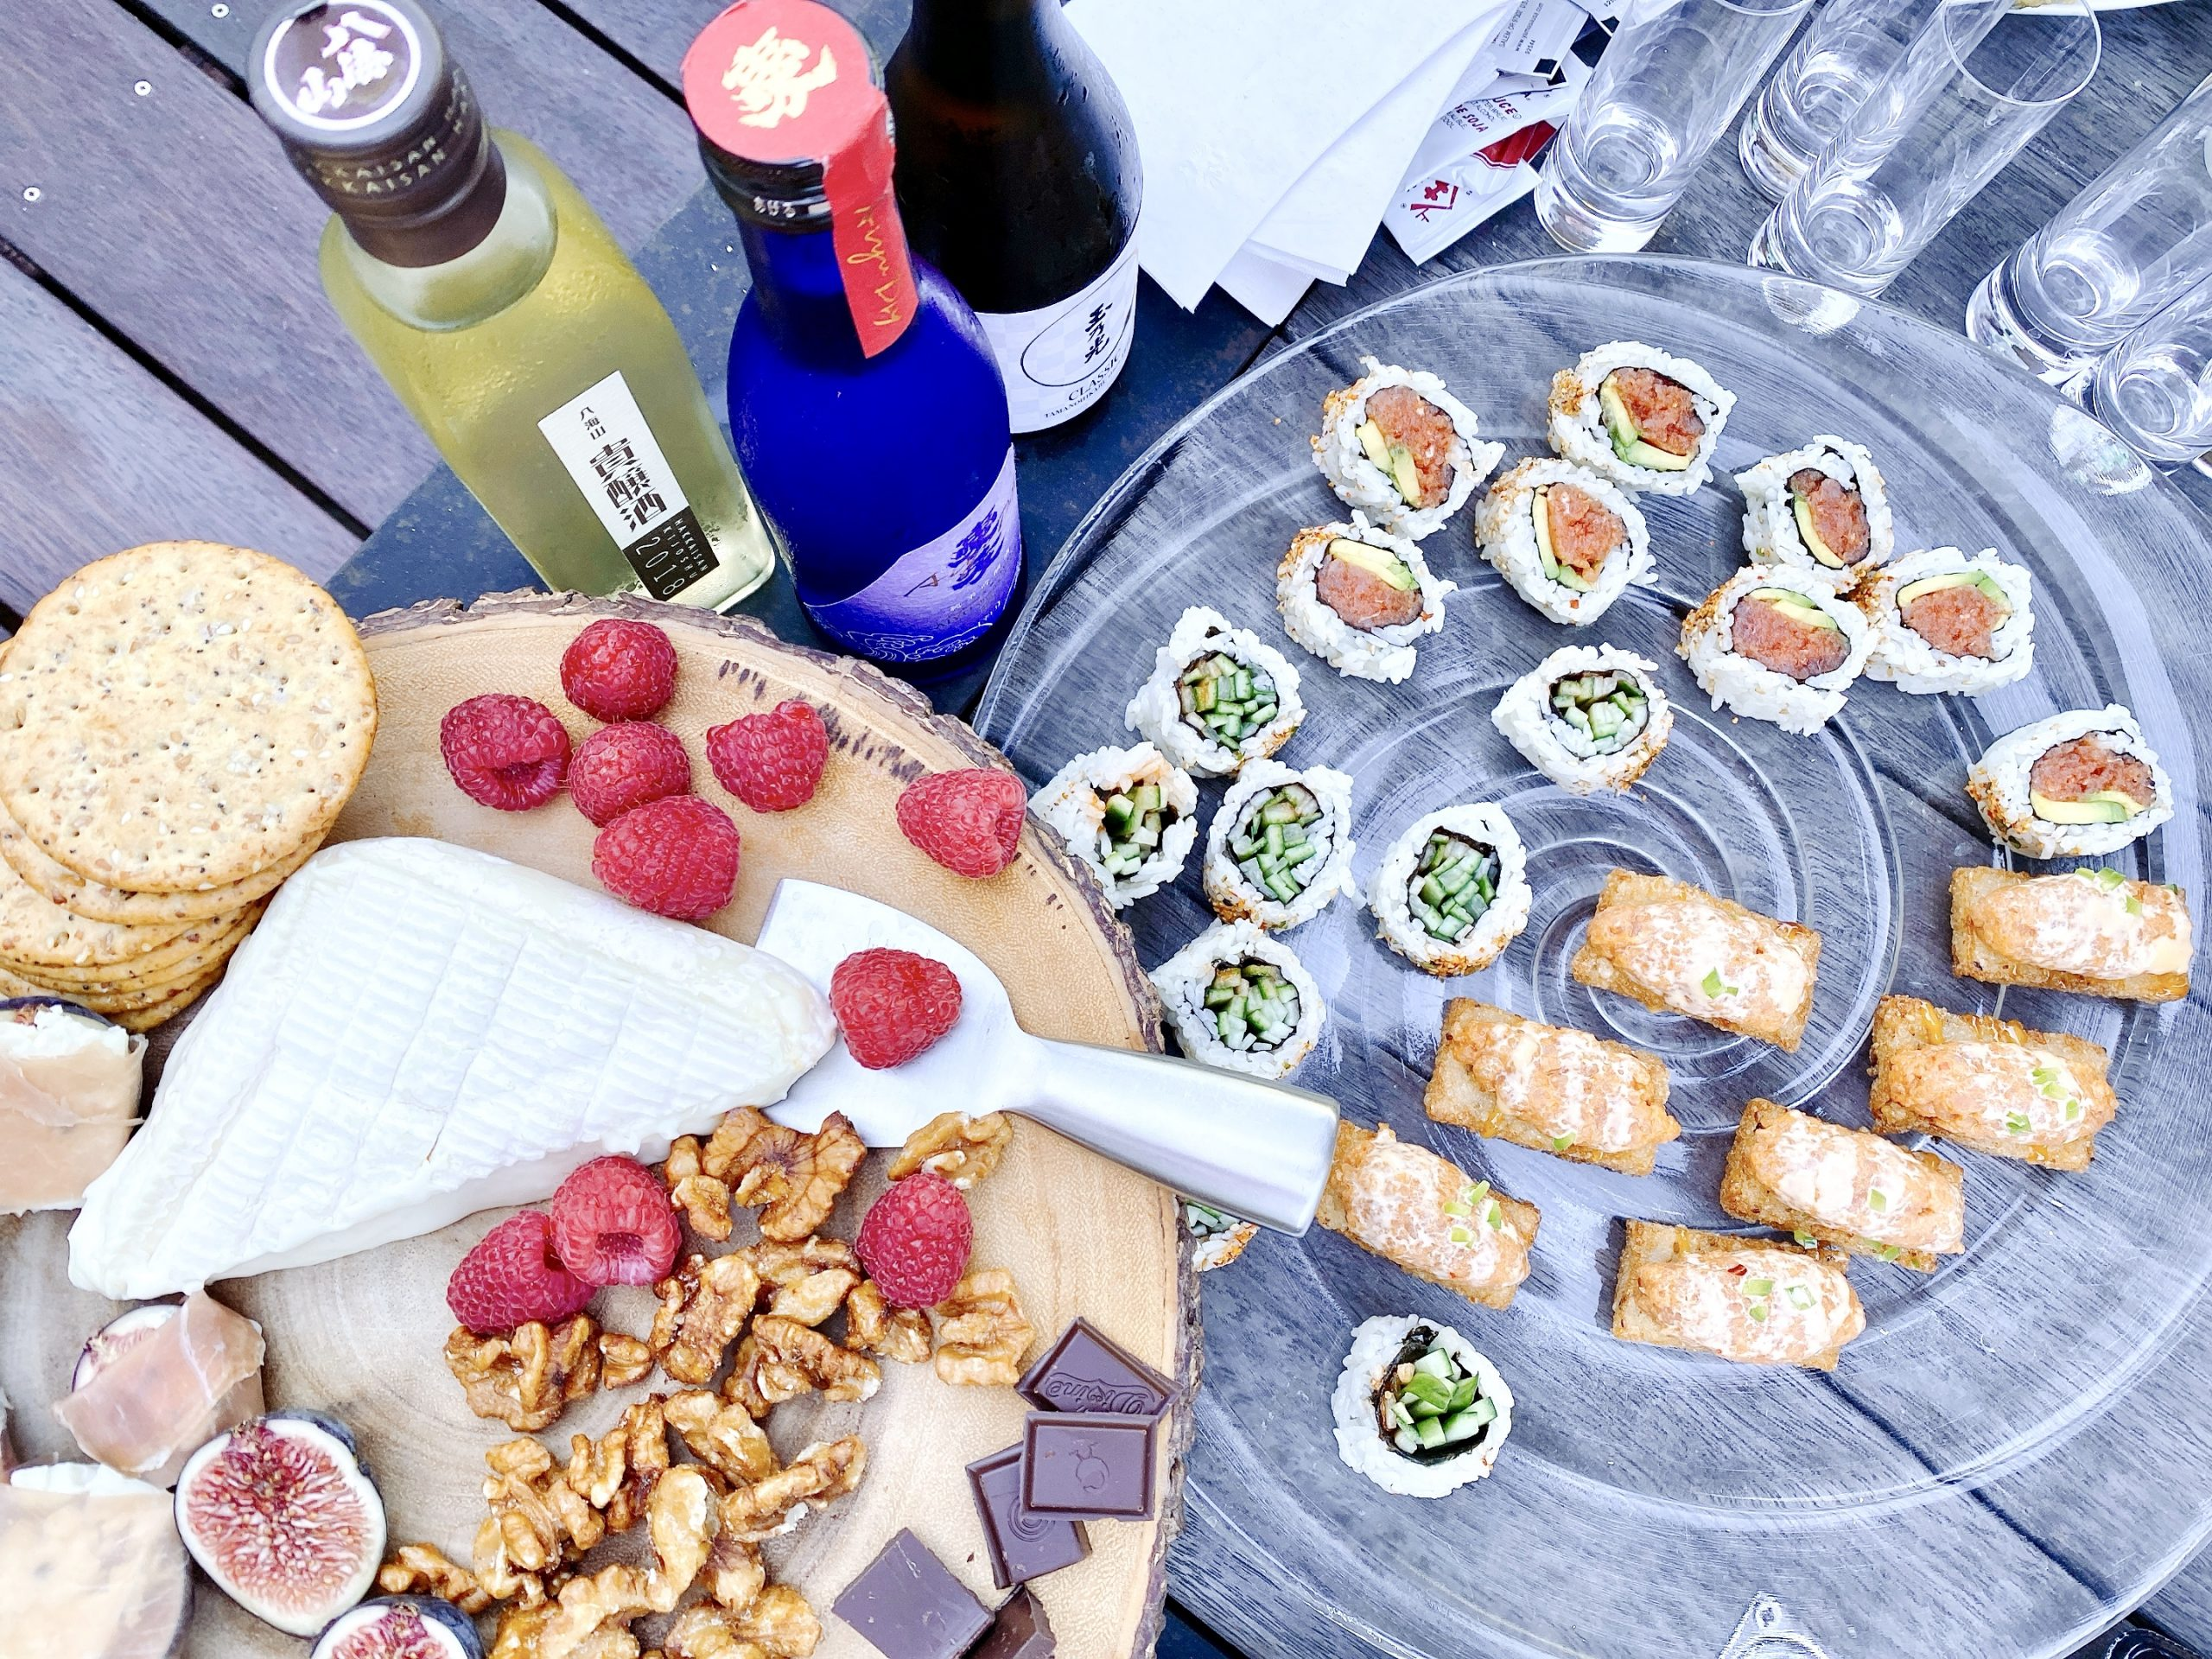 sake pairing with cheese, berries, nuts, chocolate, and sushi